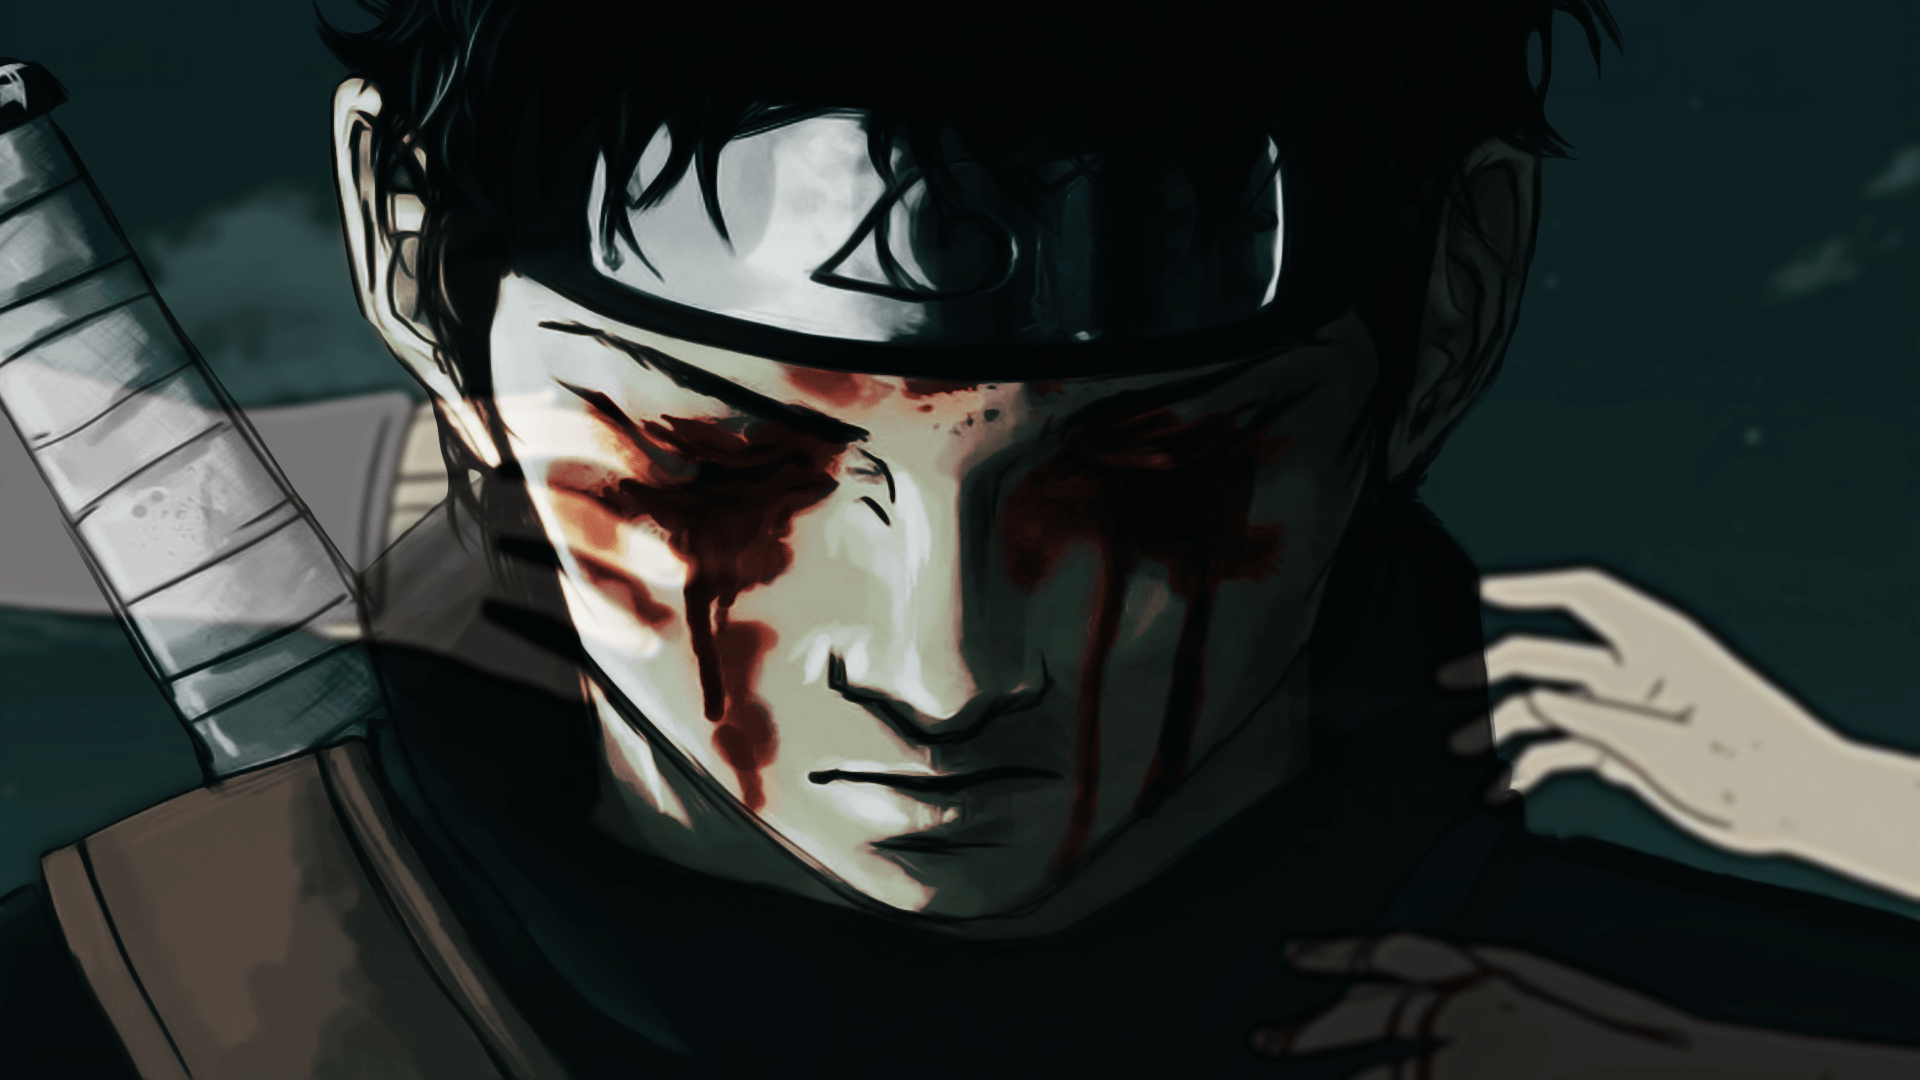 Is It Wise to Use Shimui Uchiha Wallpaper background?